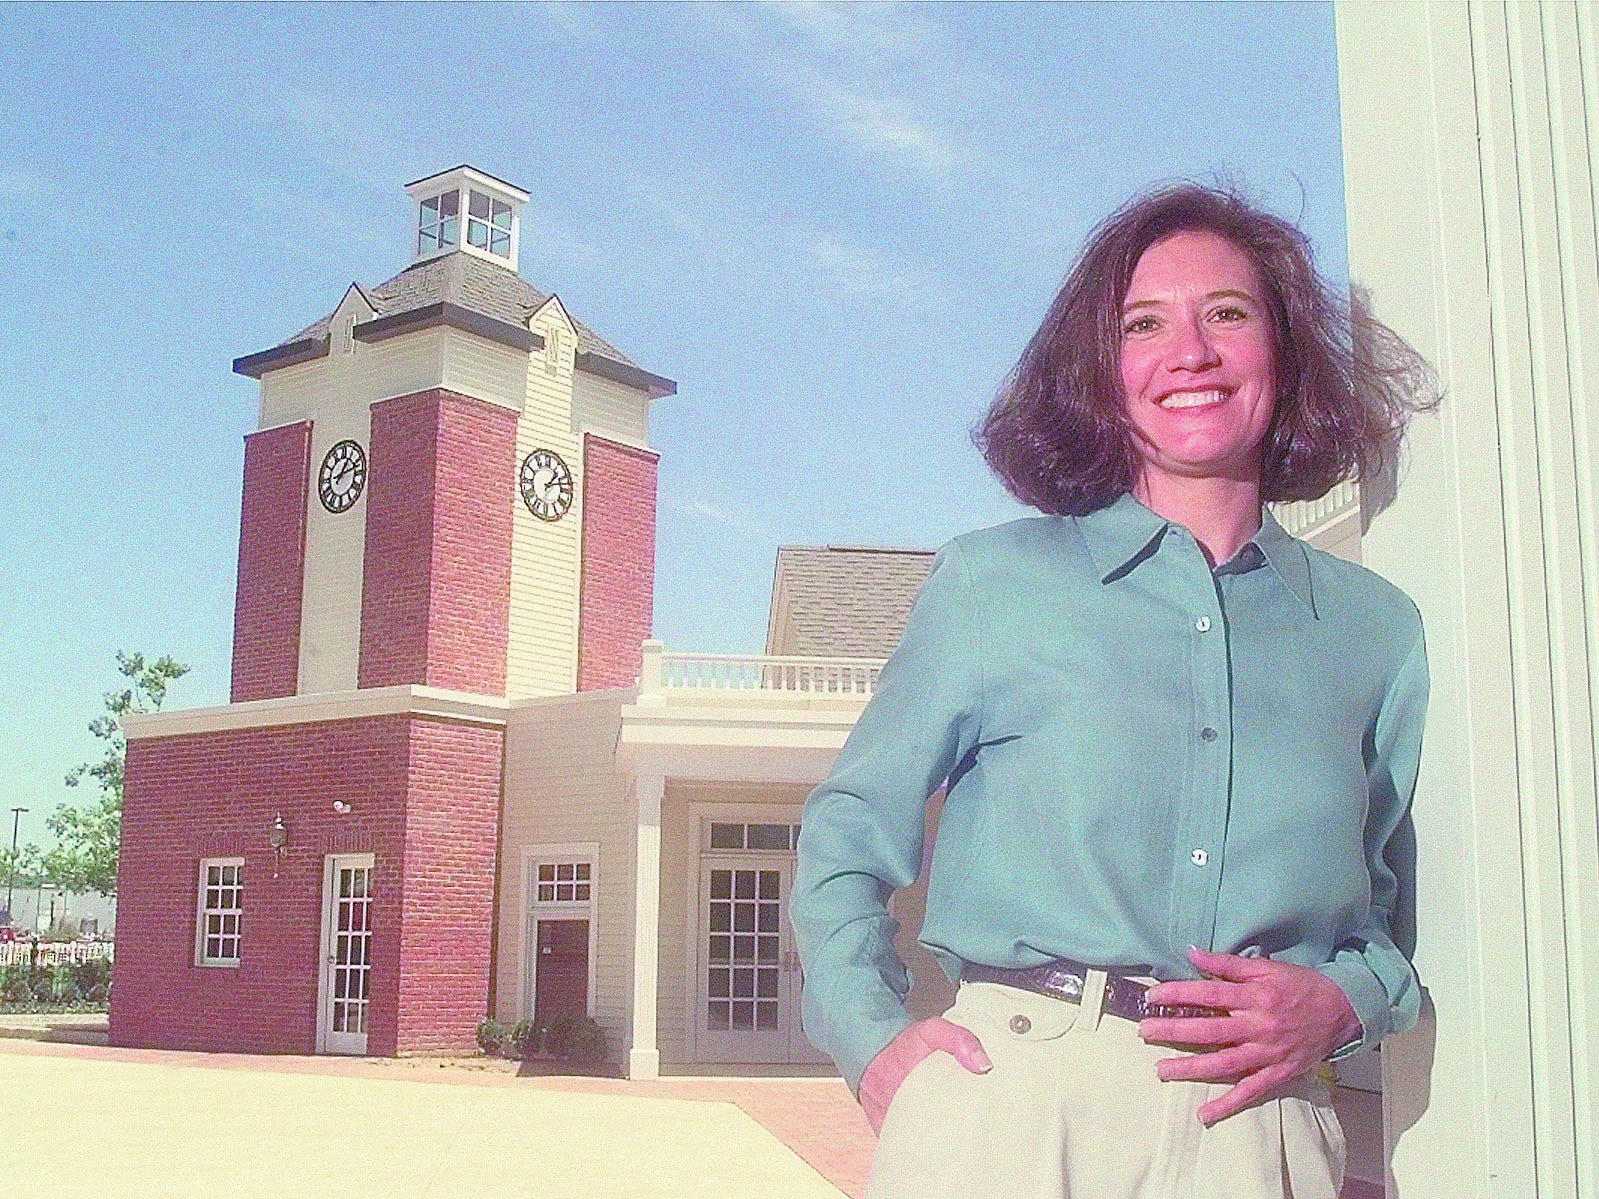 Tami Longaberger poses outside the reception center at the Homestead.